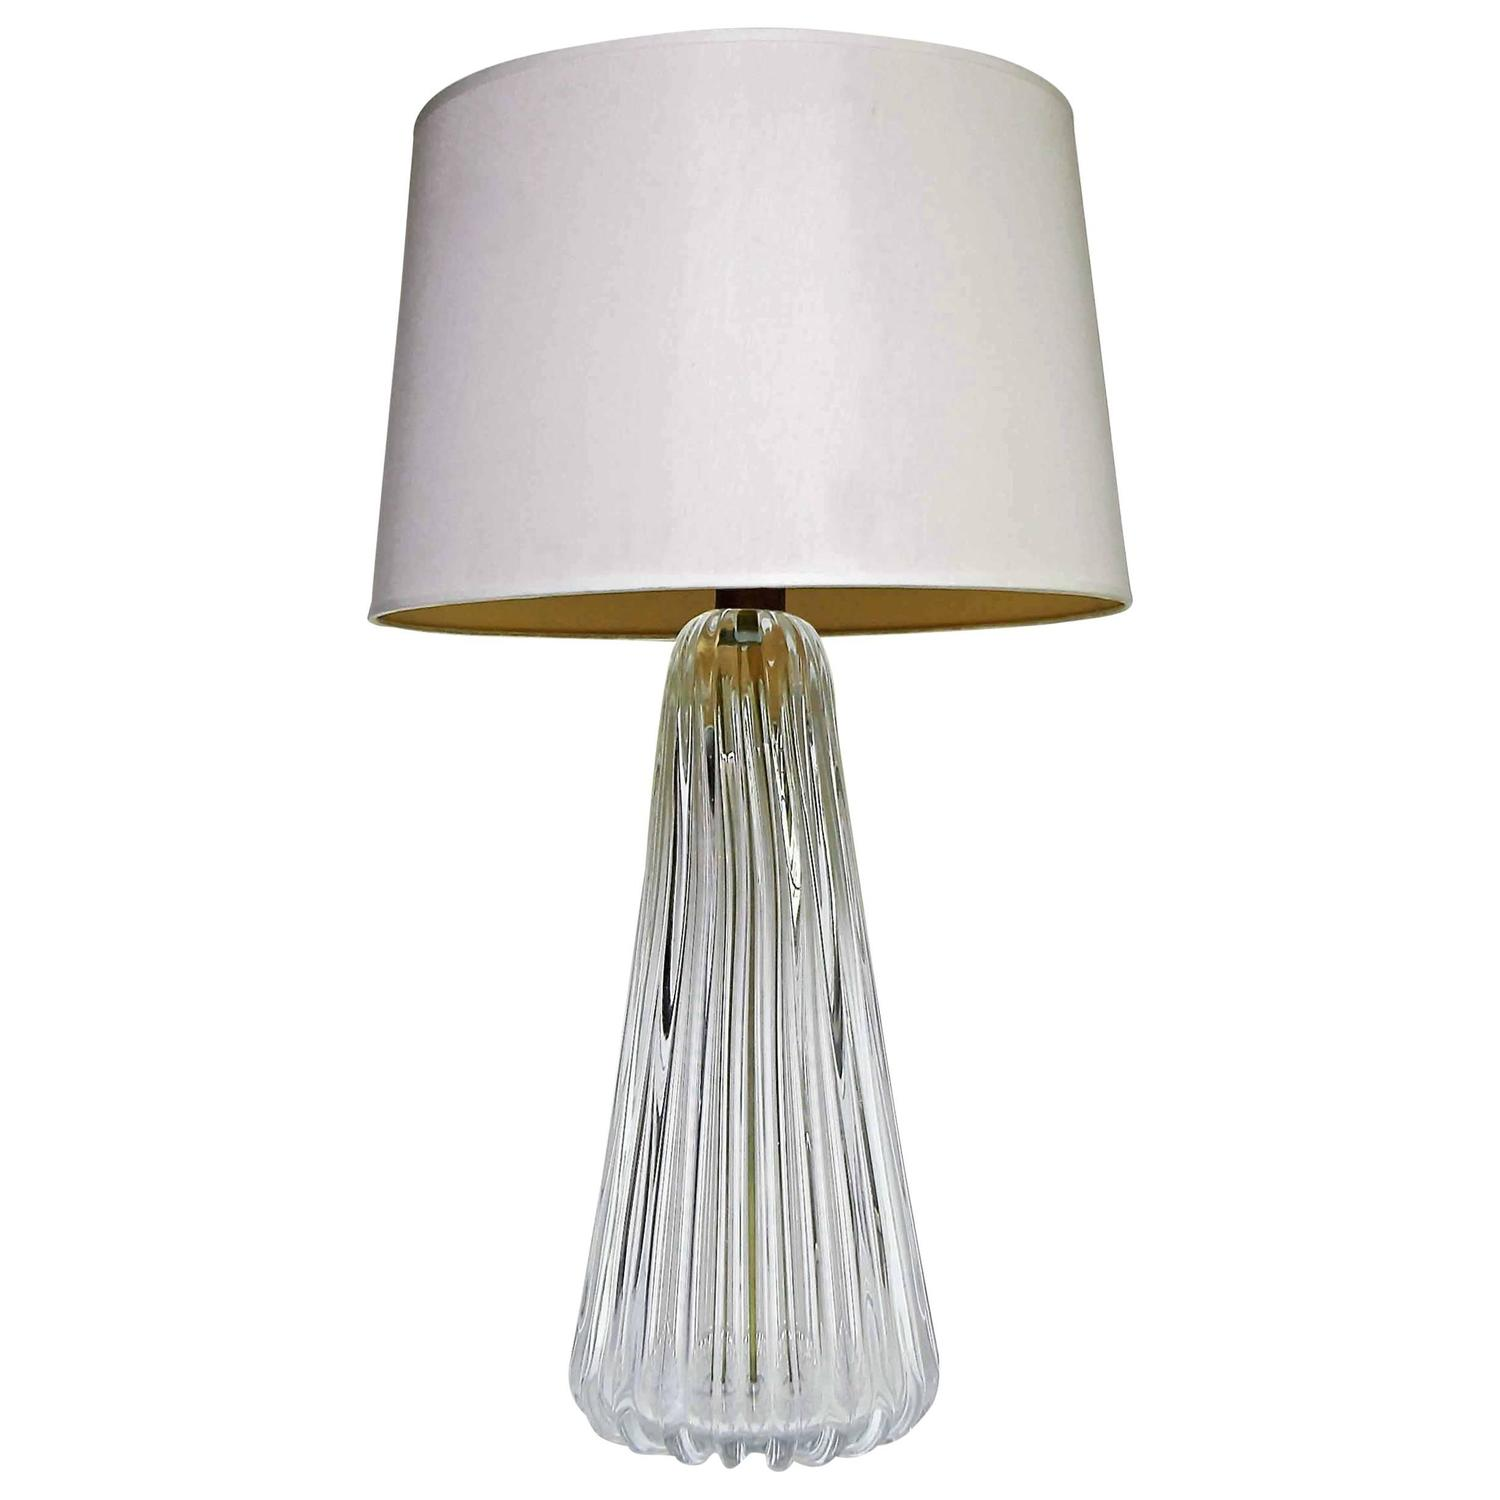 murano italian clear ribbed glass table lamp for sale at 1stdibs. Black Bedroom Furniture Sets. Home Design Ideas